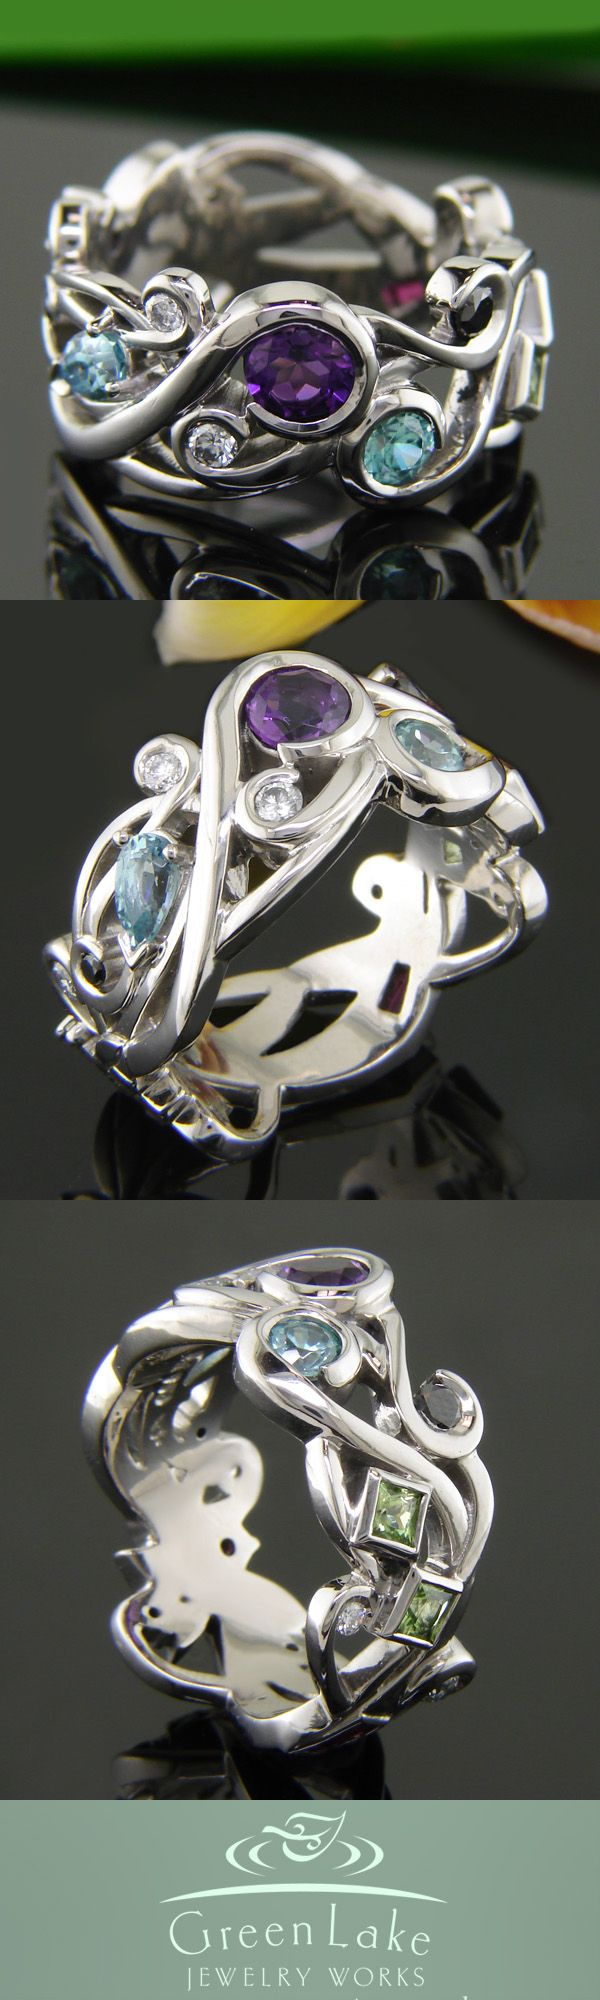 Custom #MothersRing in pierced palladium with family birthstones: White and black #diamonds, peridot, pink tourmaline, aquamarine, amethyst, and ruby. #GreenLakeMade